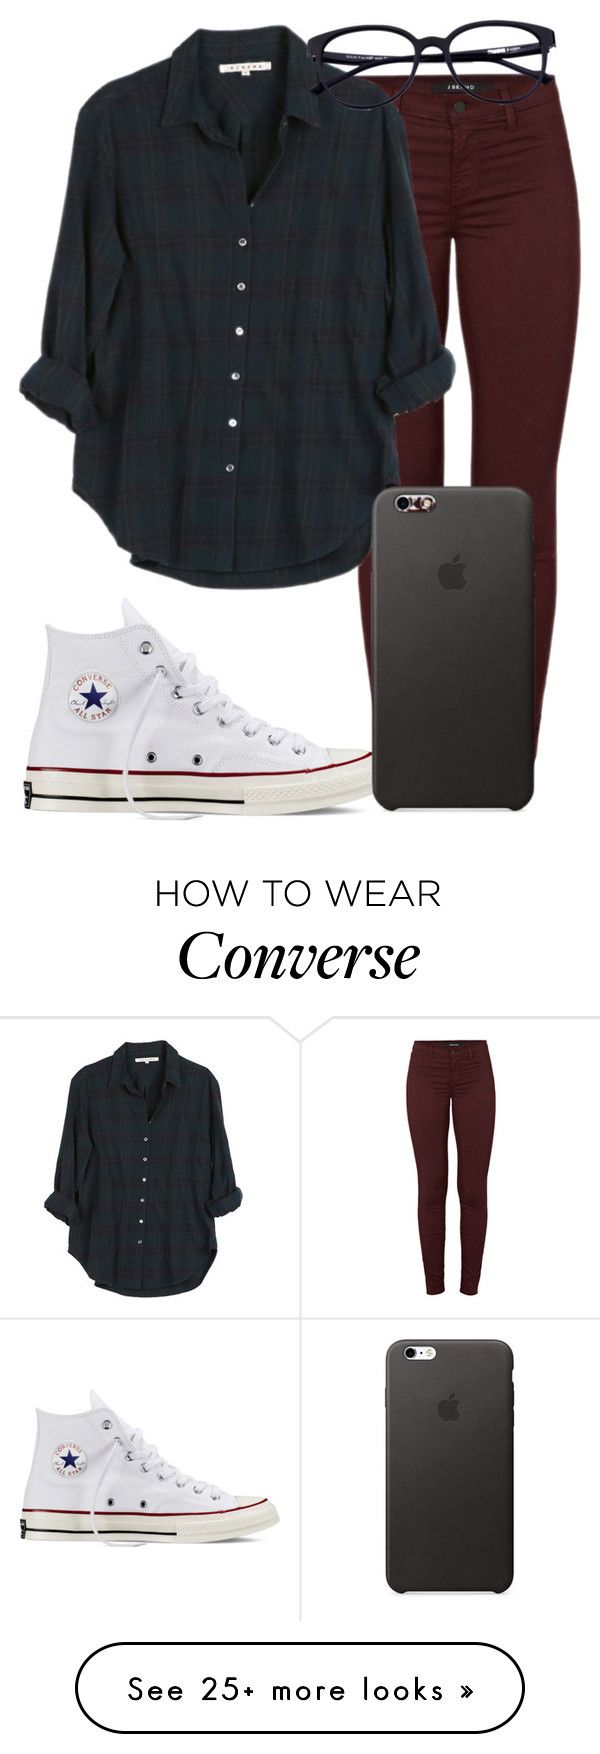 """Baby, it's Magic"" by mallorimae on Polyvore featuring J Brand, Xirena and Converse #basically"